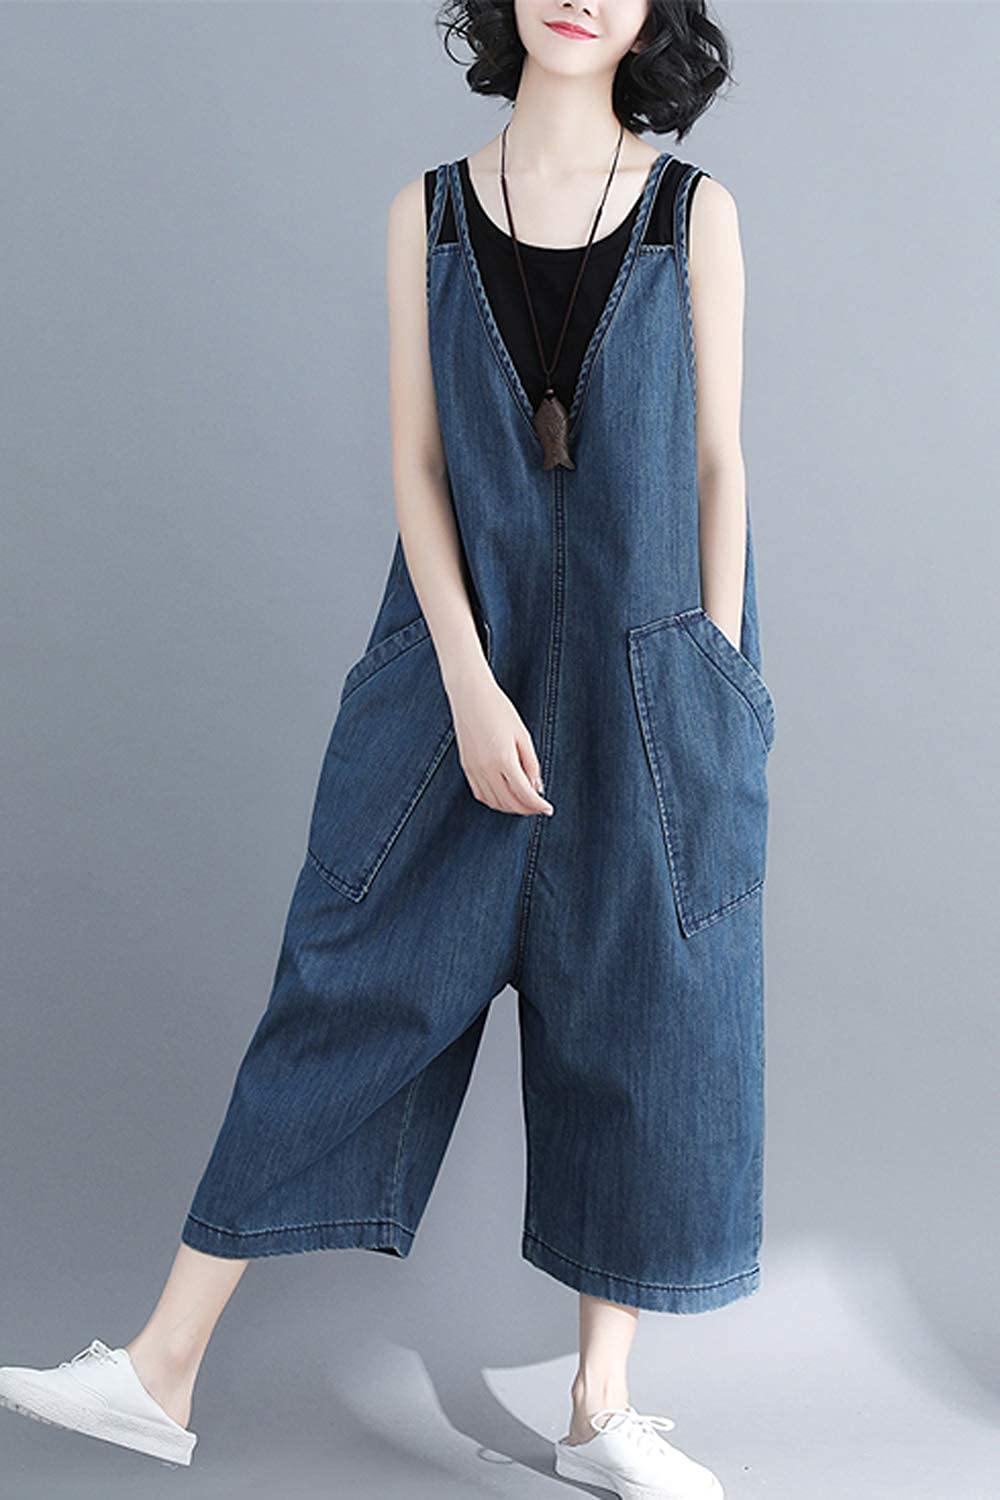 Yulinge Women Denim Jumpsuits High Waisted Summer Palazzo Pants Jeans Rompers Overalls